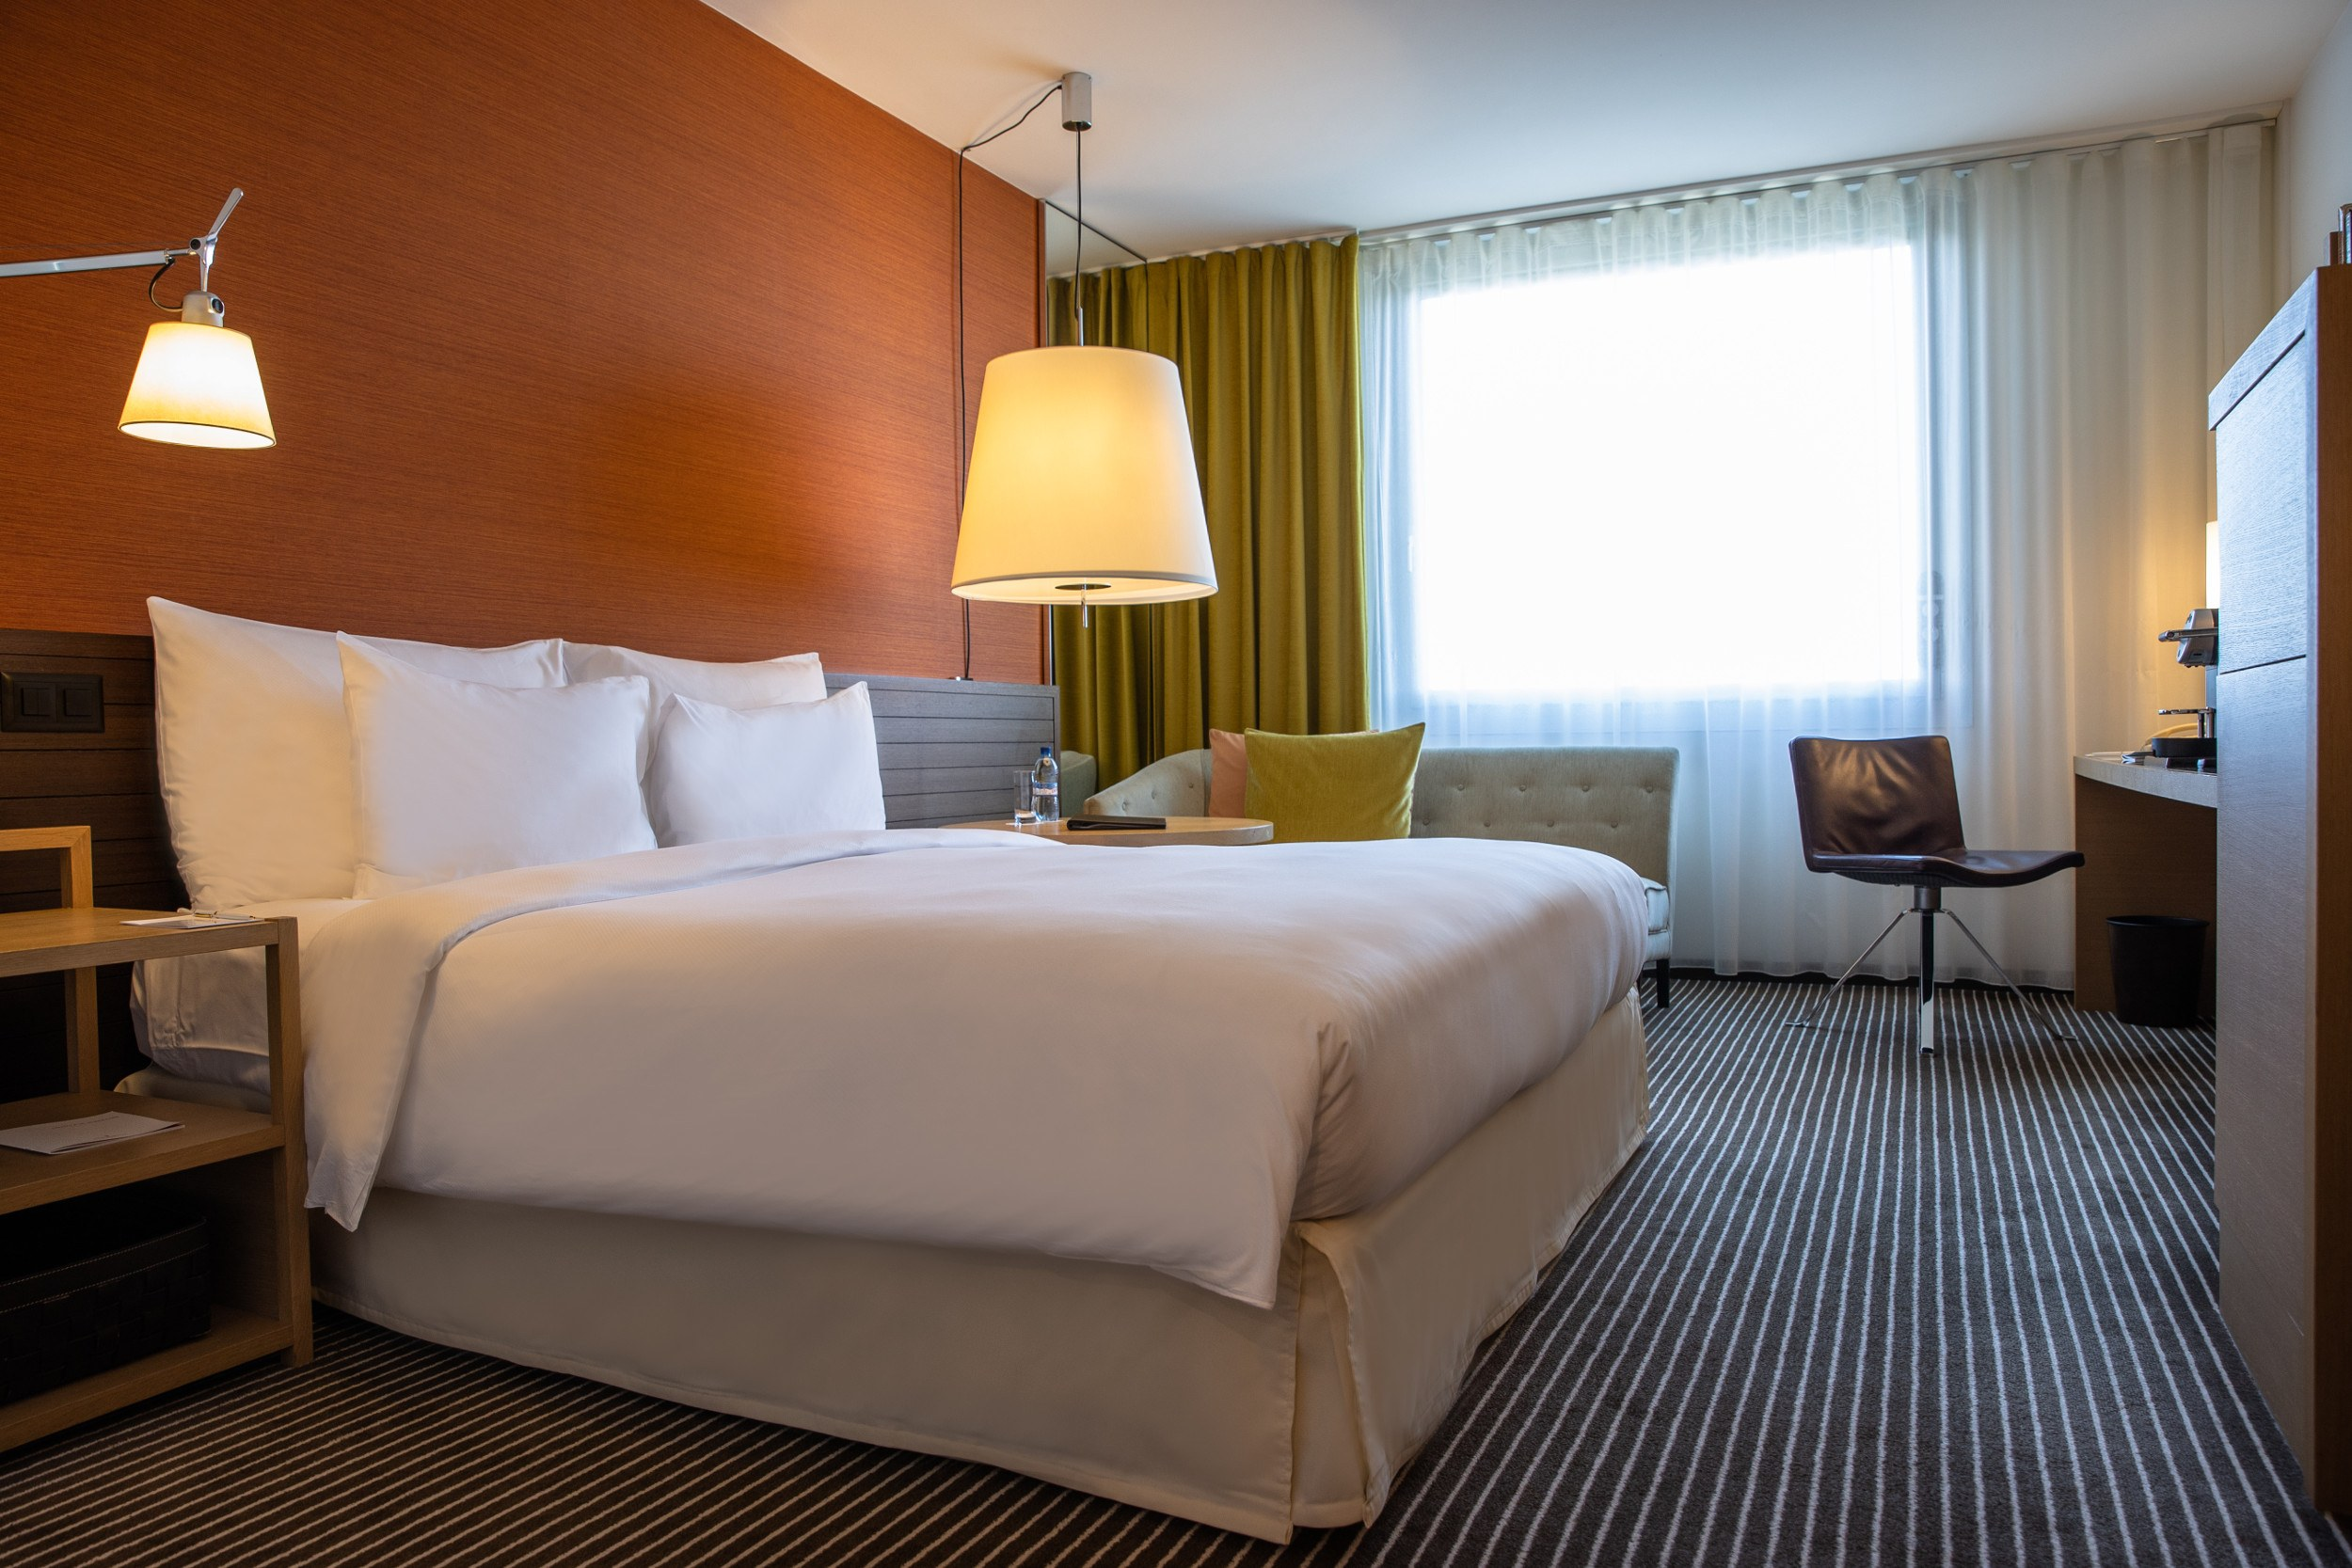 InterContinental-Geneva-Hotel-Deluxe-room-1